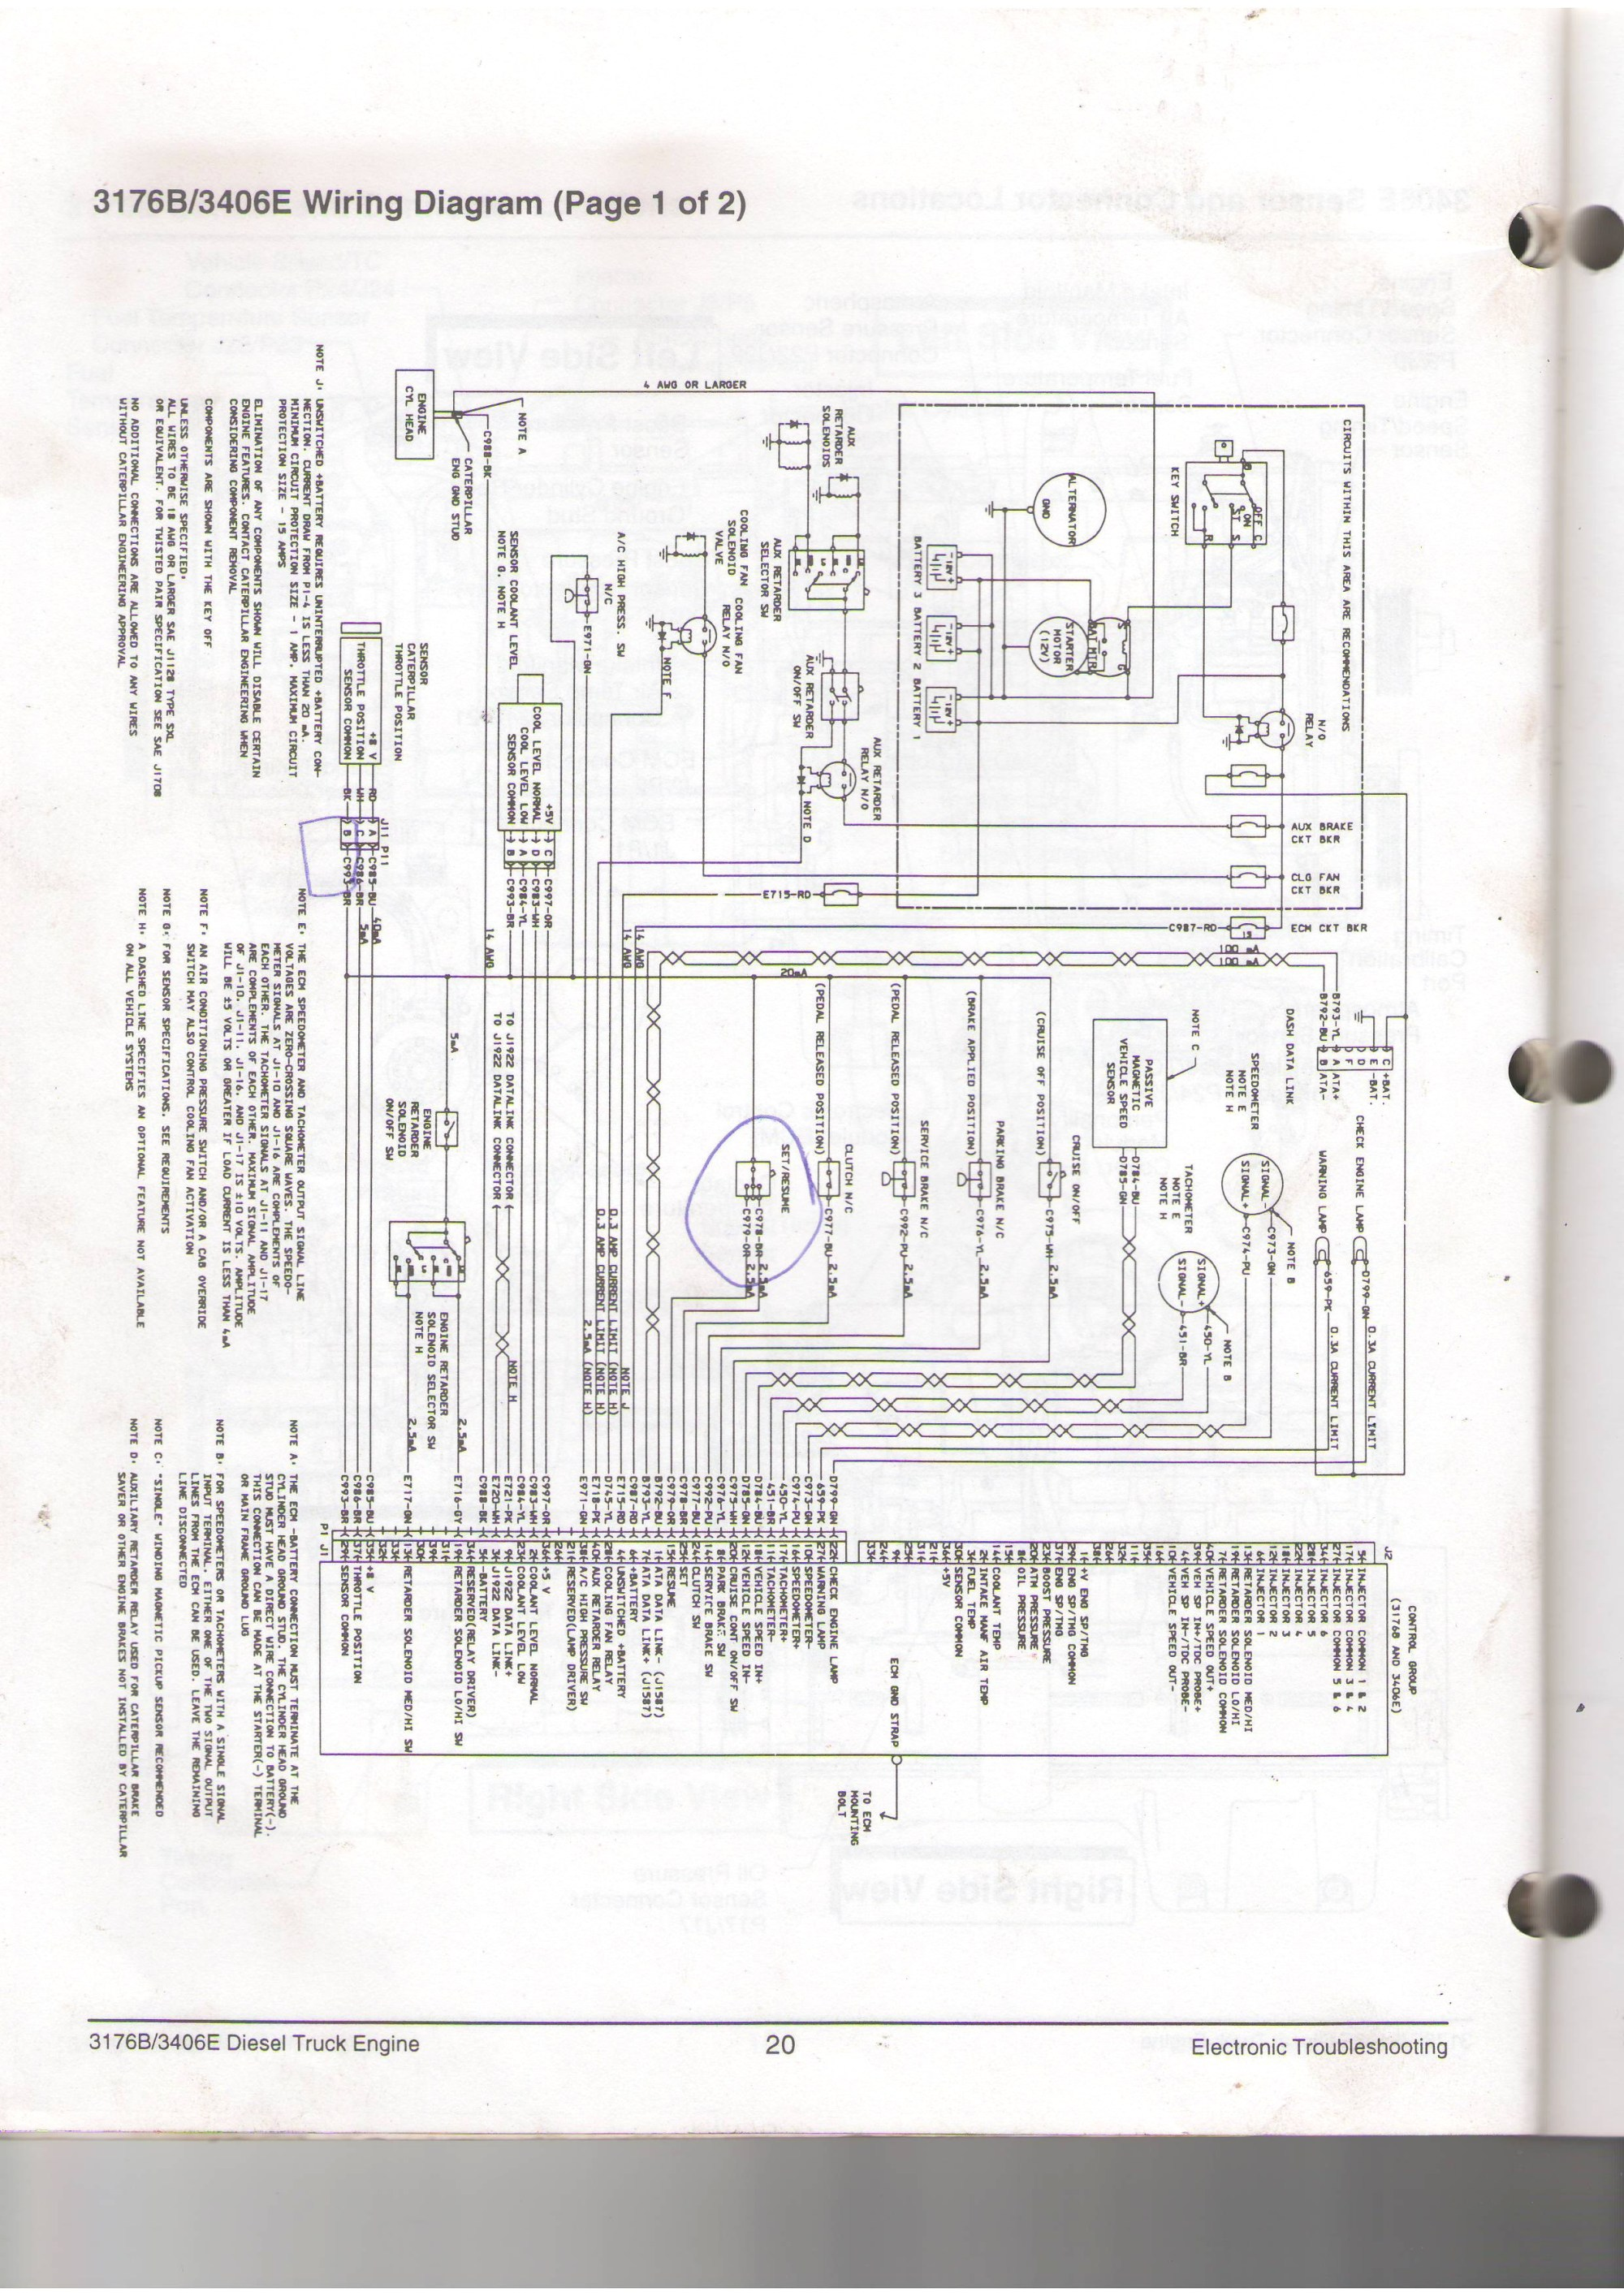 hight resolution of c12 cat engine ecm diagram wiring diagram centre cat c12 ecm pin wiring diagram